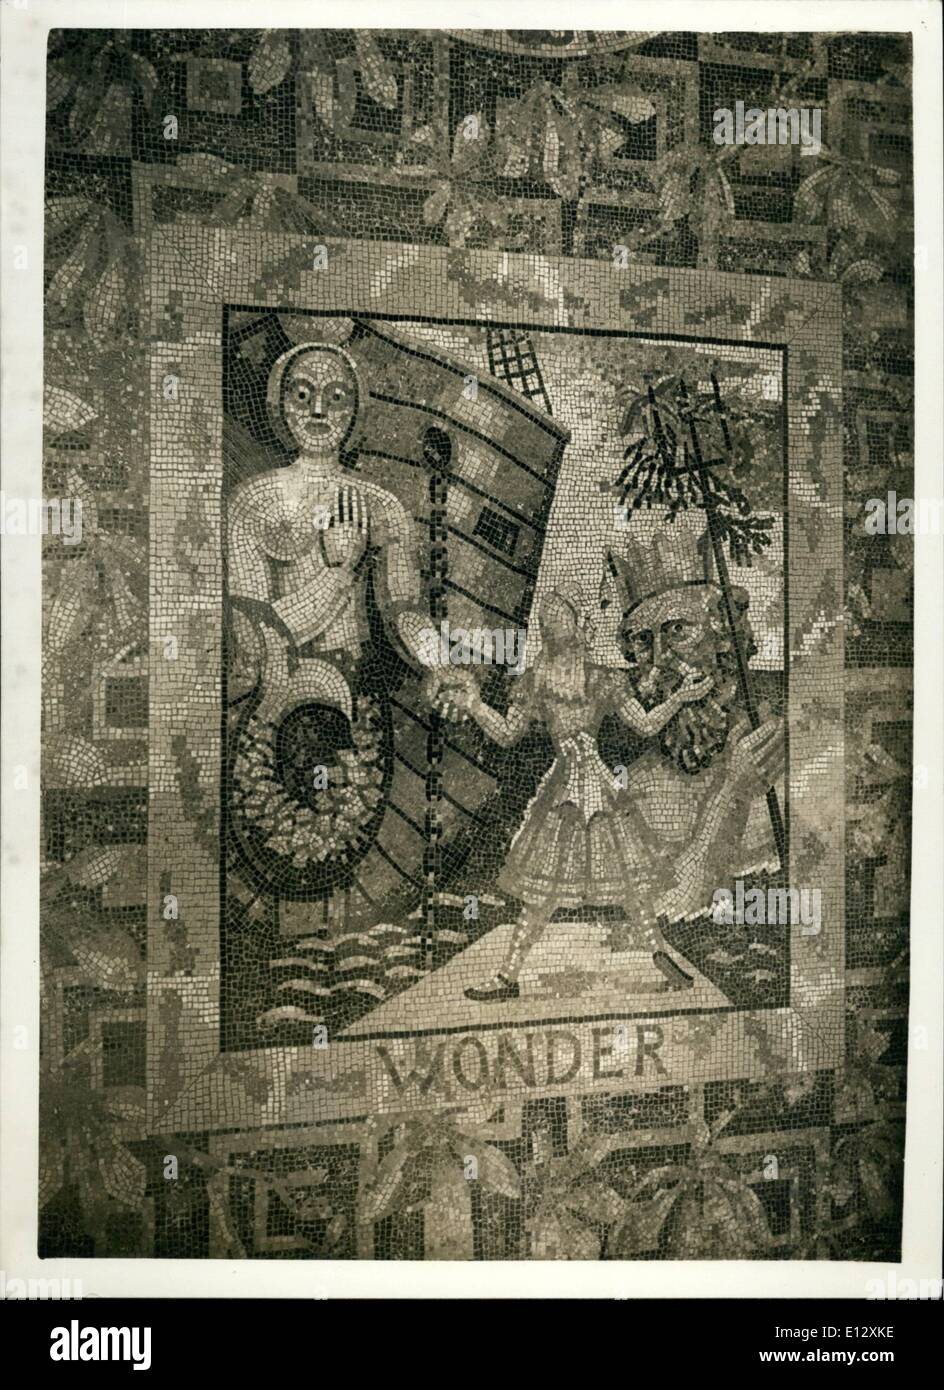 Feb. 26, 2012 - Wonder: a figurehead invites Alive to embark on new adventures, while Neptune is offering her gifts from the son. Neptune is Augustus John. one of the panels of the mosaic floor. - Stock Image